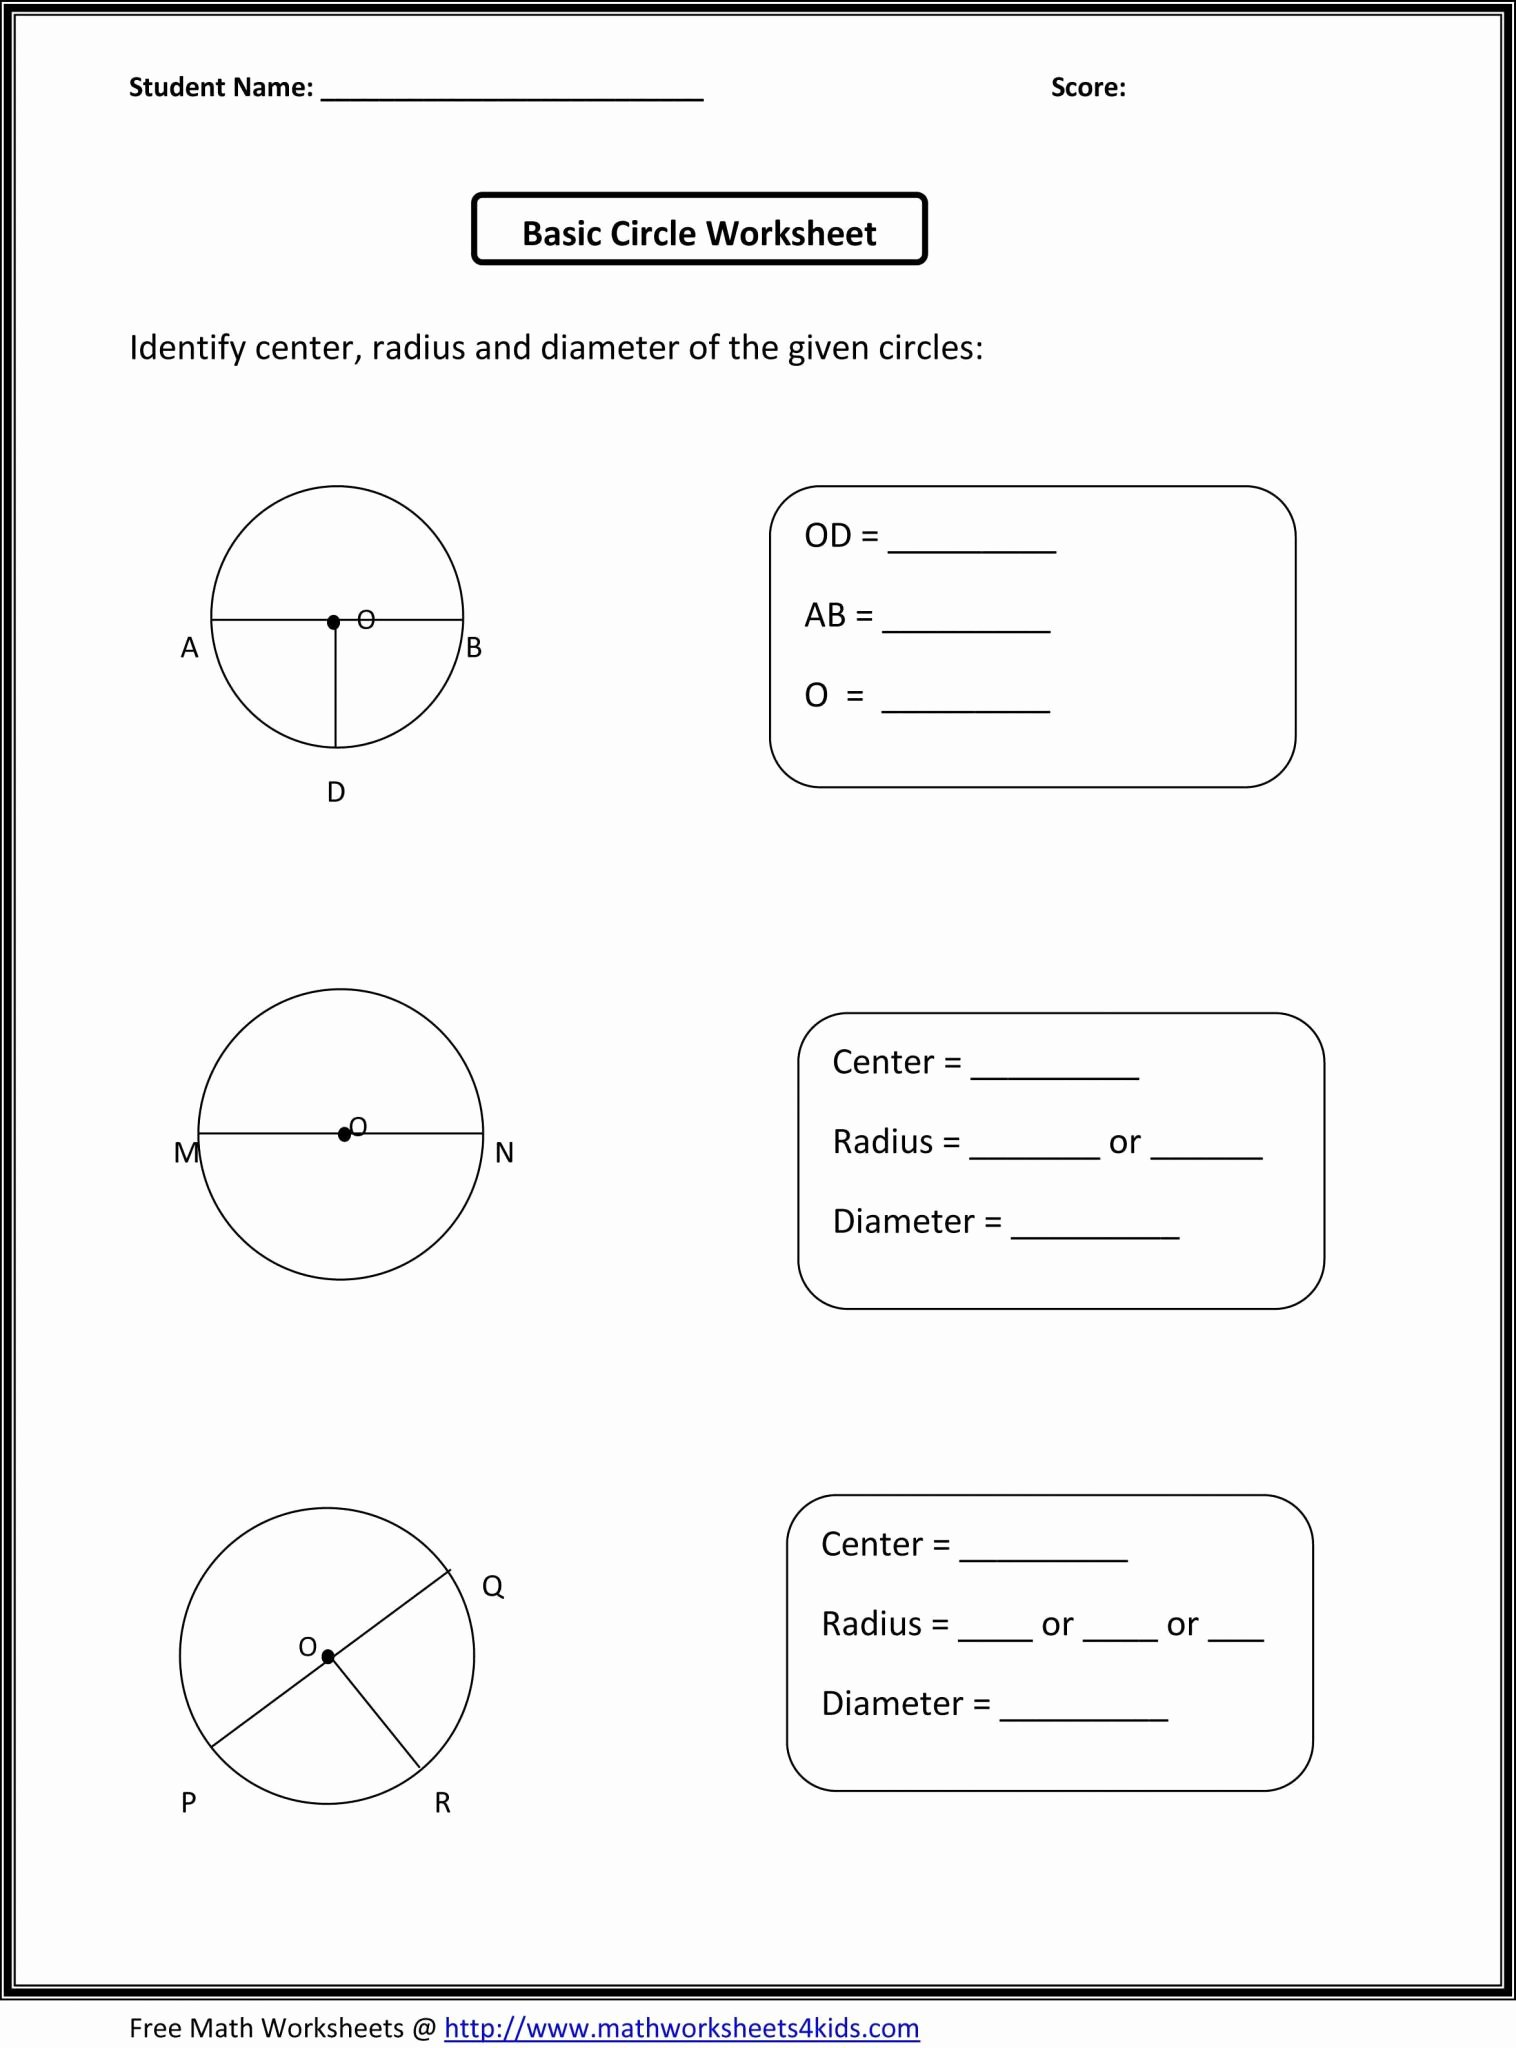 Solving Equations Review Worksheet Awesome Decode Design Worksheet Answers